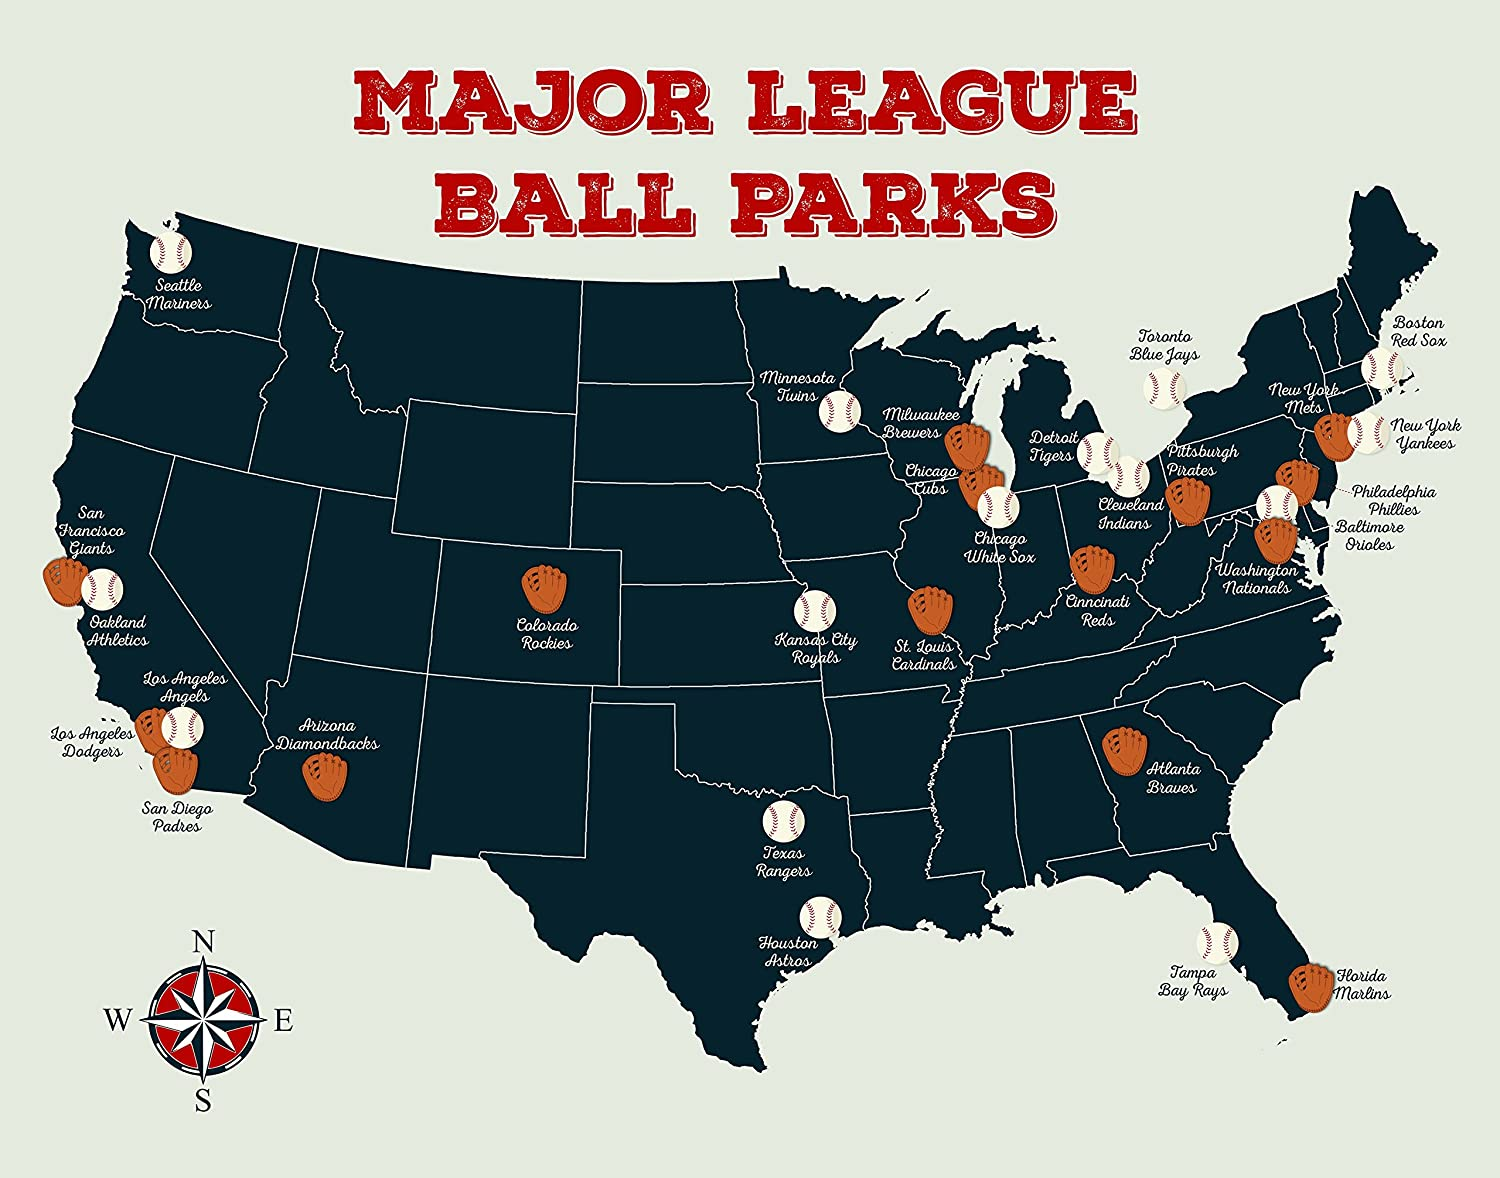 Map Of Mlb Stadiums In The Us Amazon.com: Baseball Stadium Map   Major League Ball Parks Map